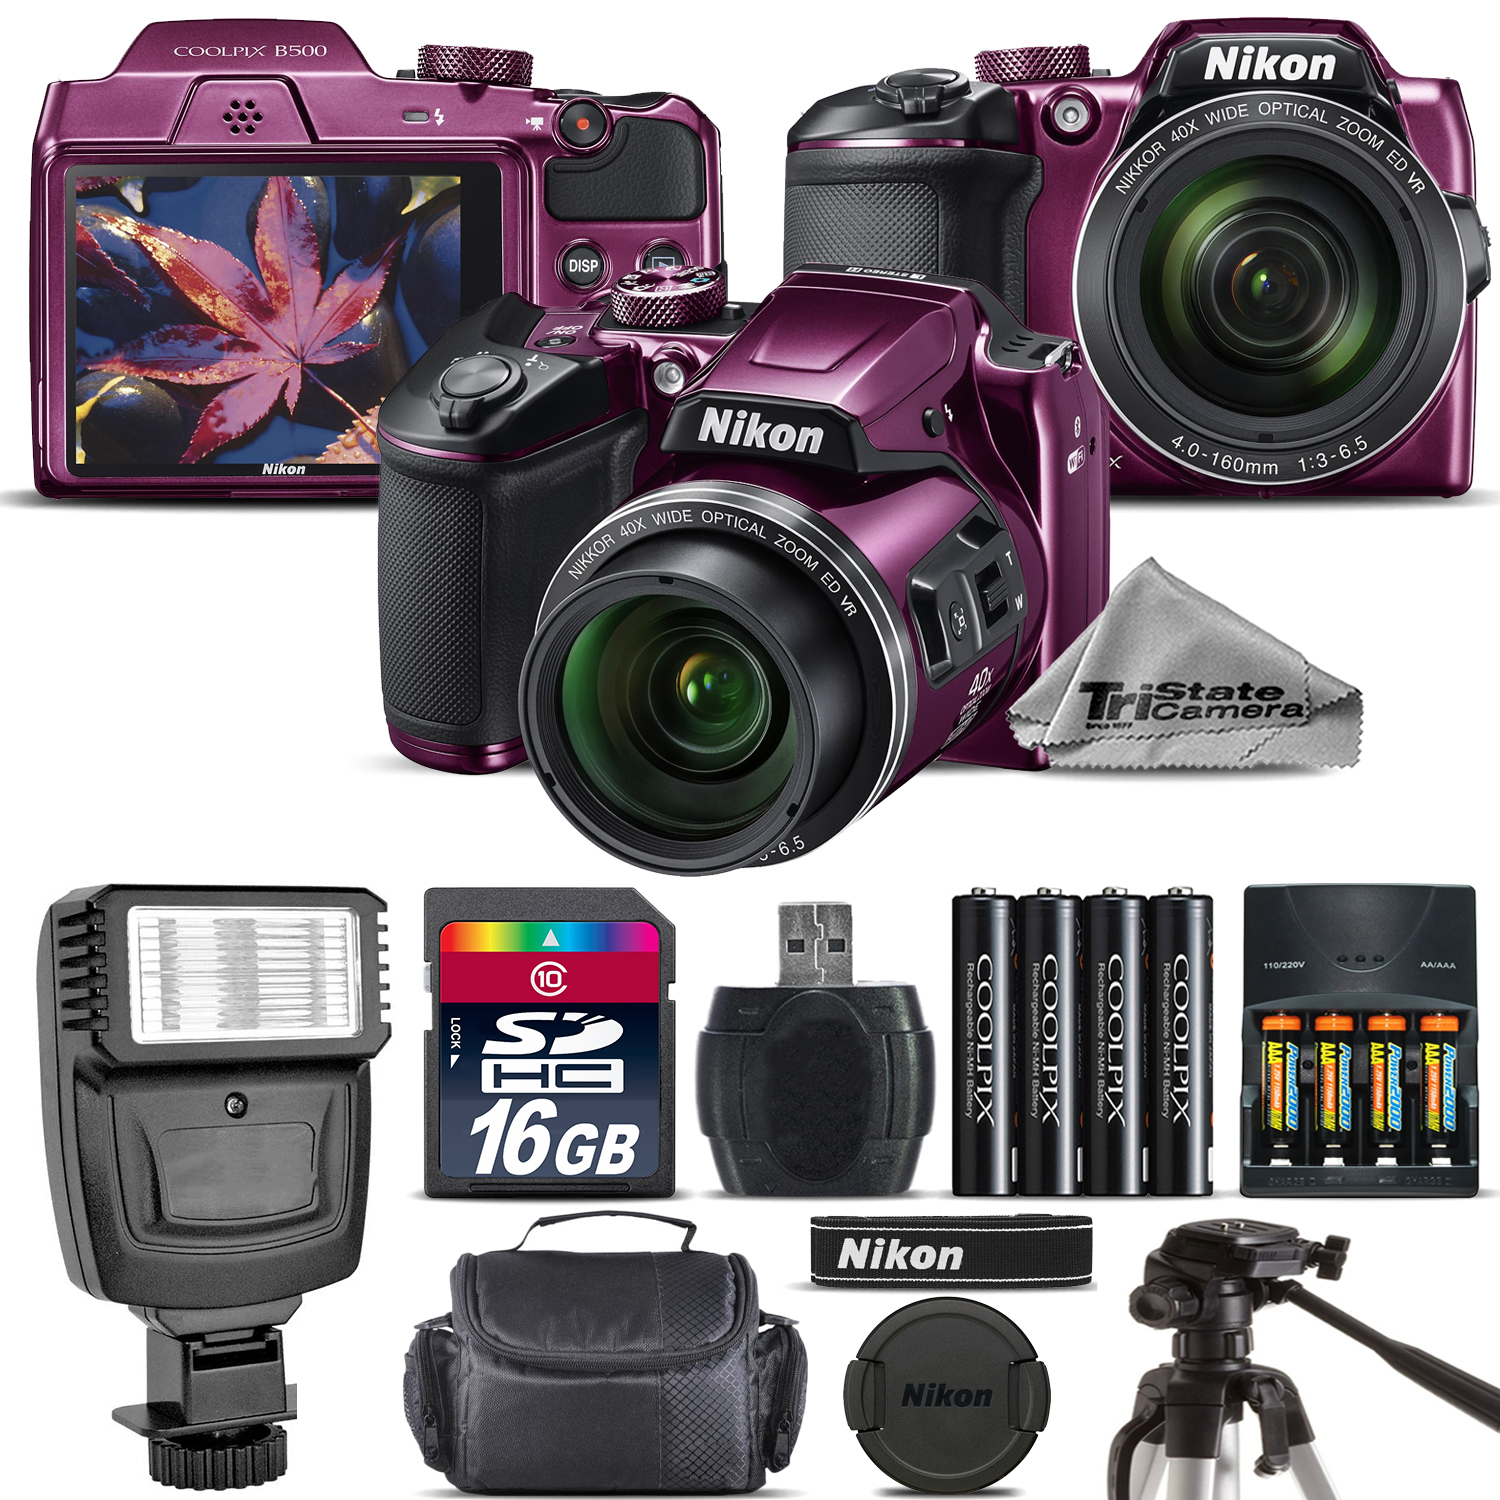 Nikon COOLPIX B500 Camera Plum 40x Zoom + Flash + Tripod + Case -16GB Kit Bundle